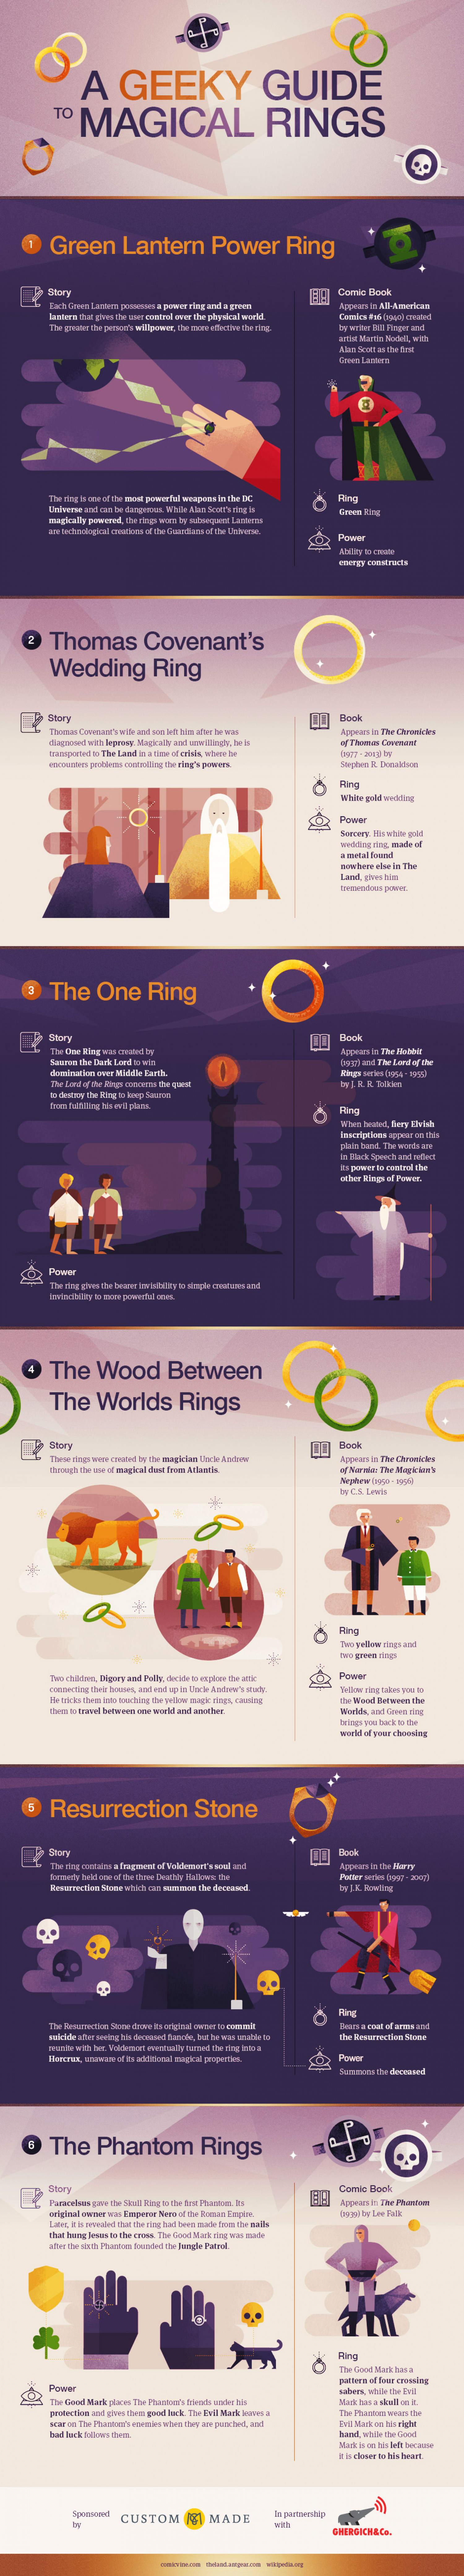 A Geeky Guide to Magical Rings Infographic